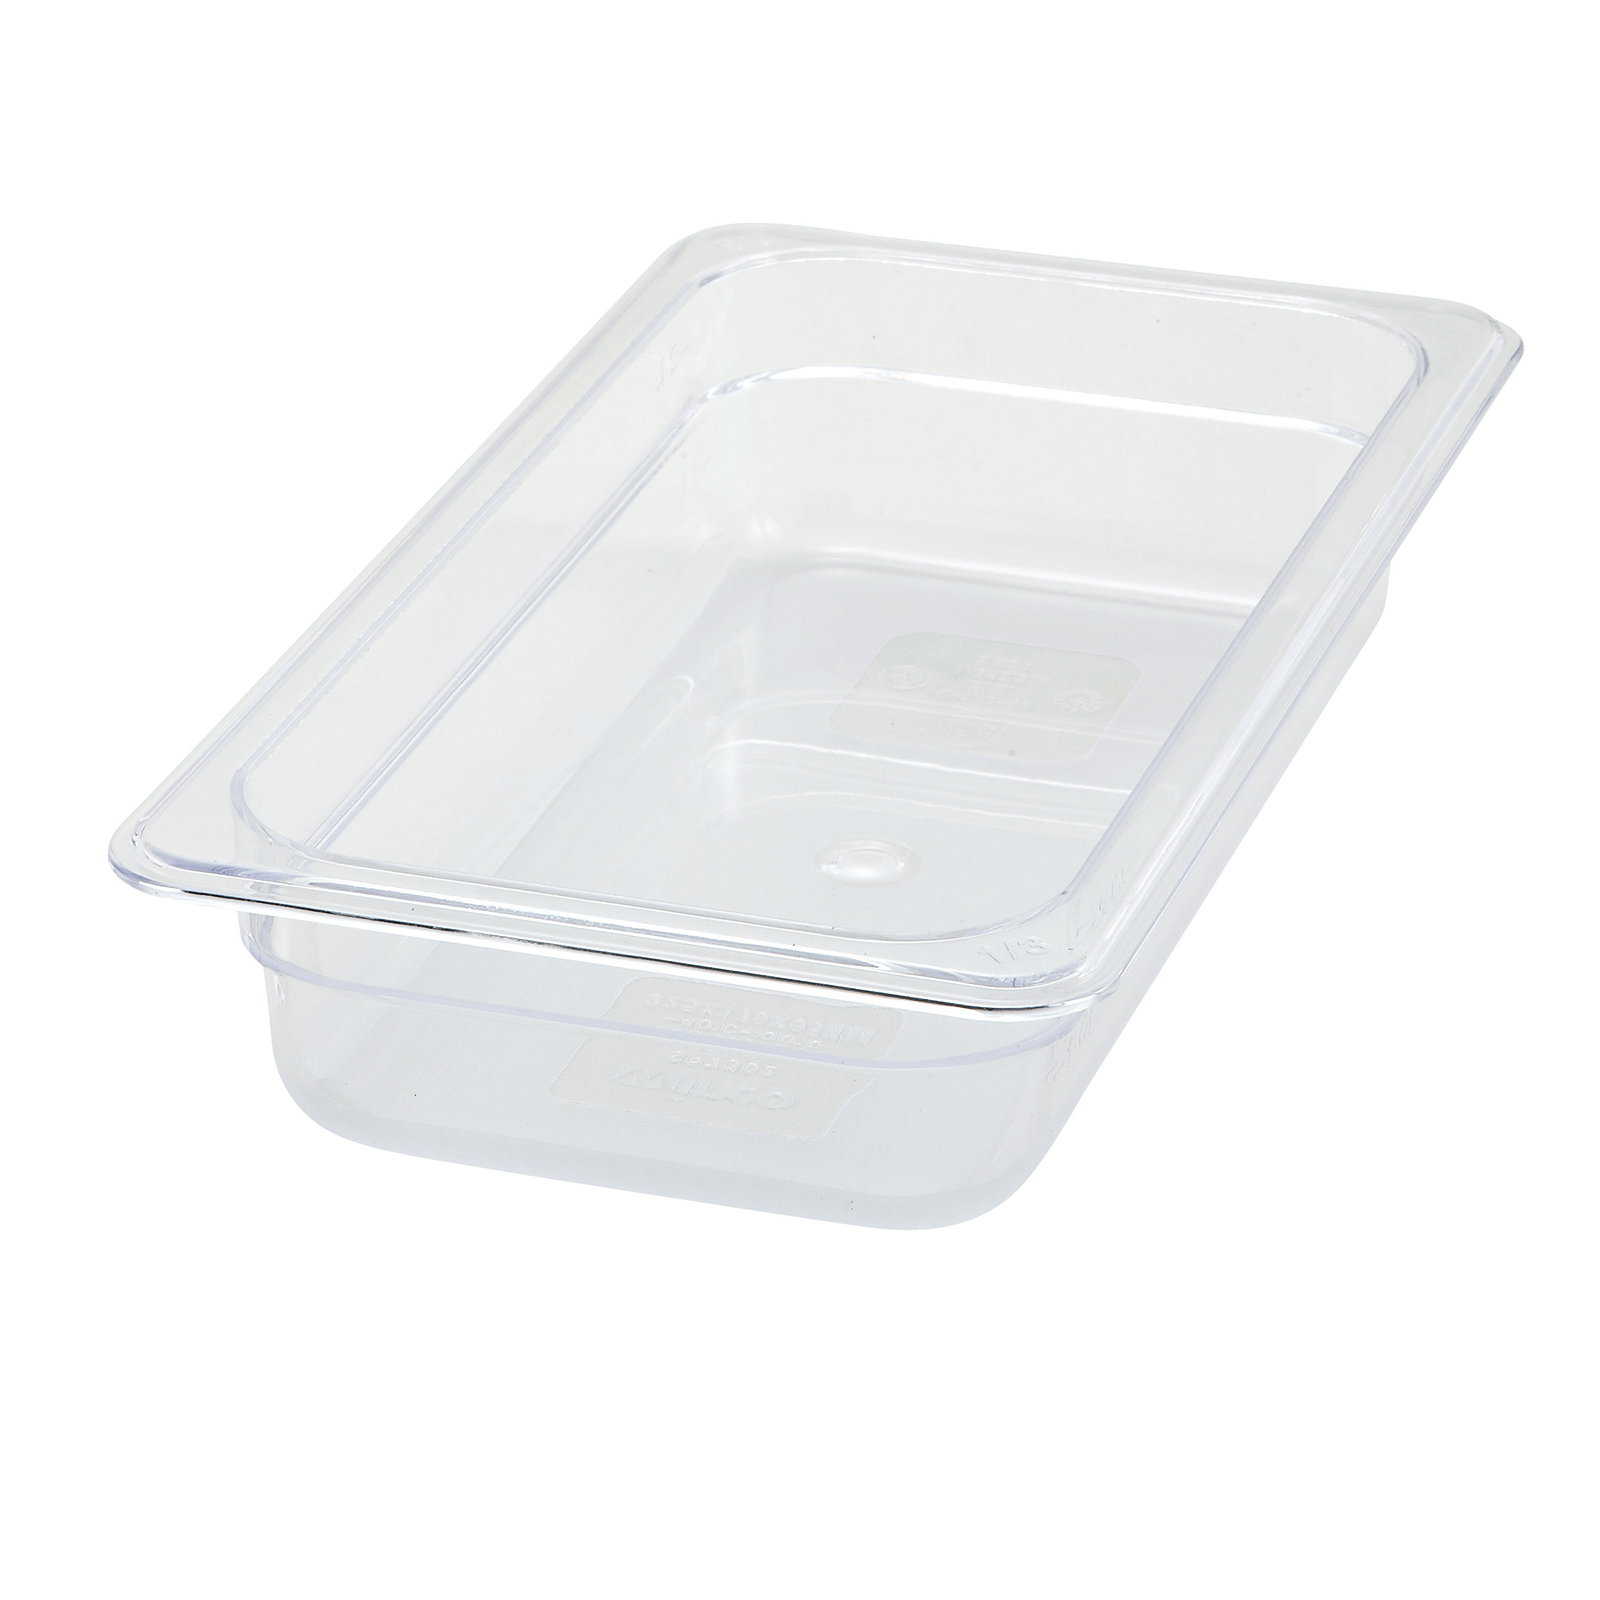 Winco SP7302 food pan, plastic